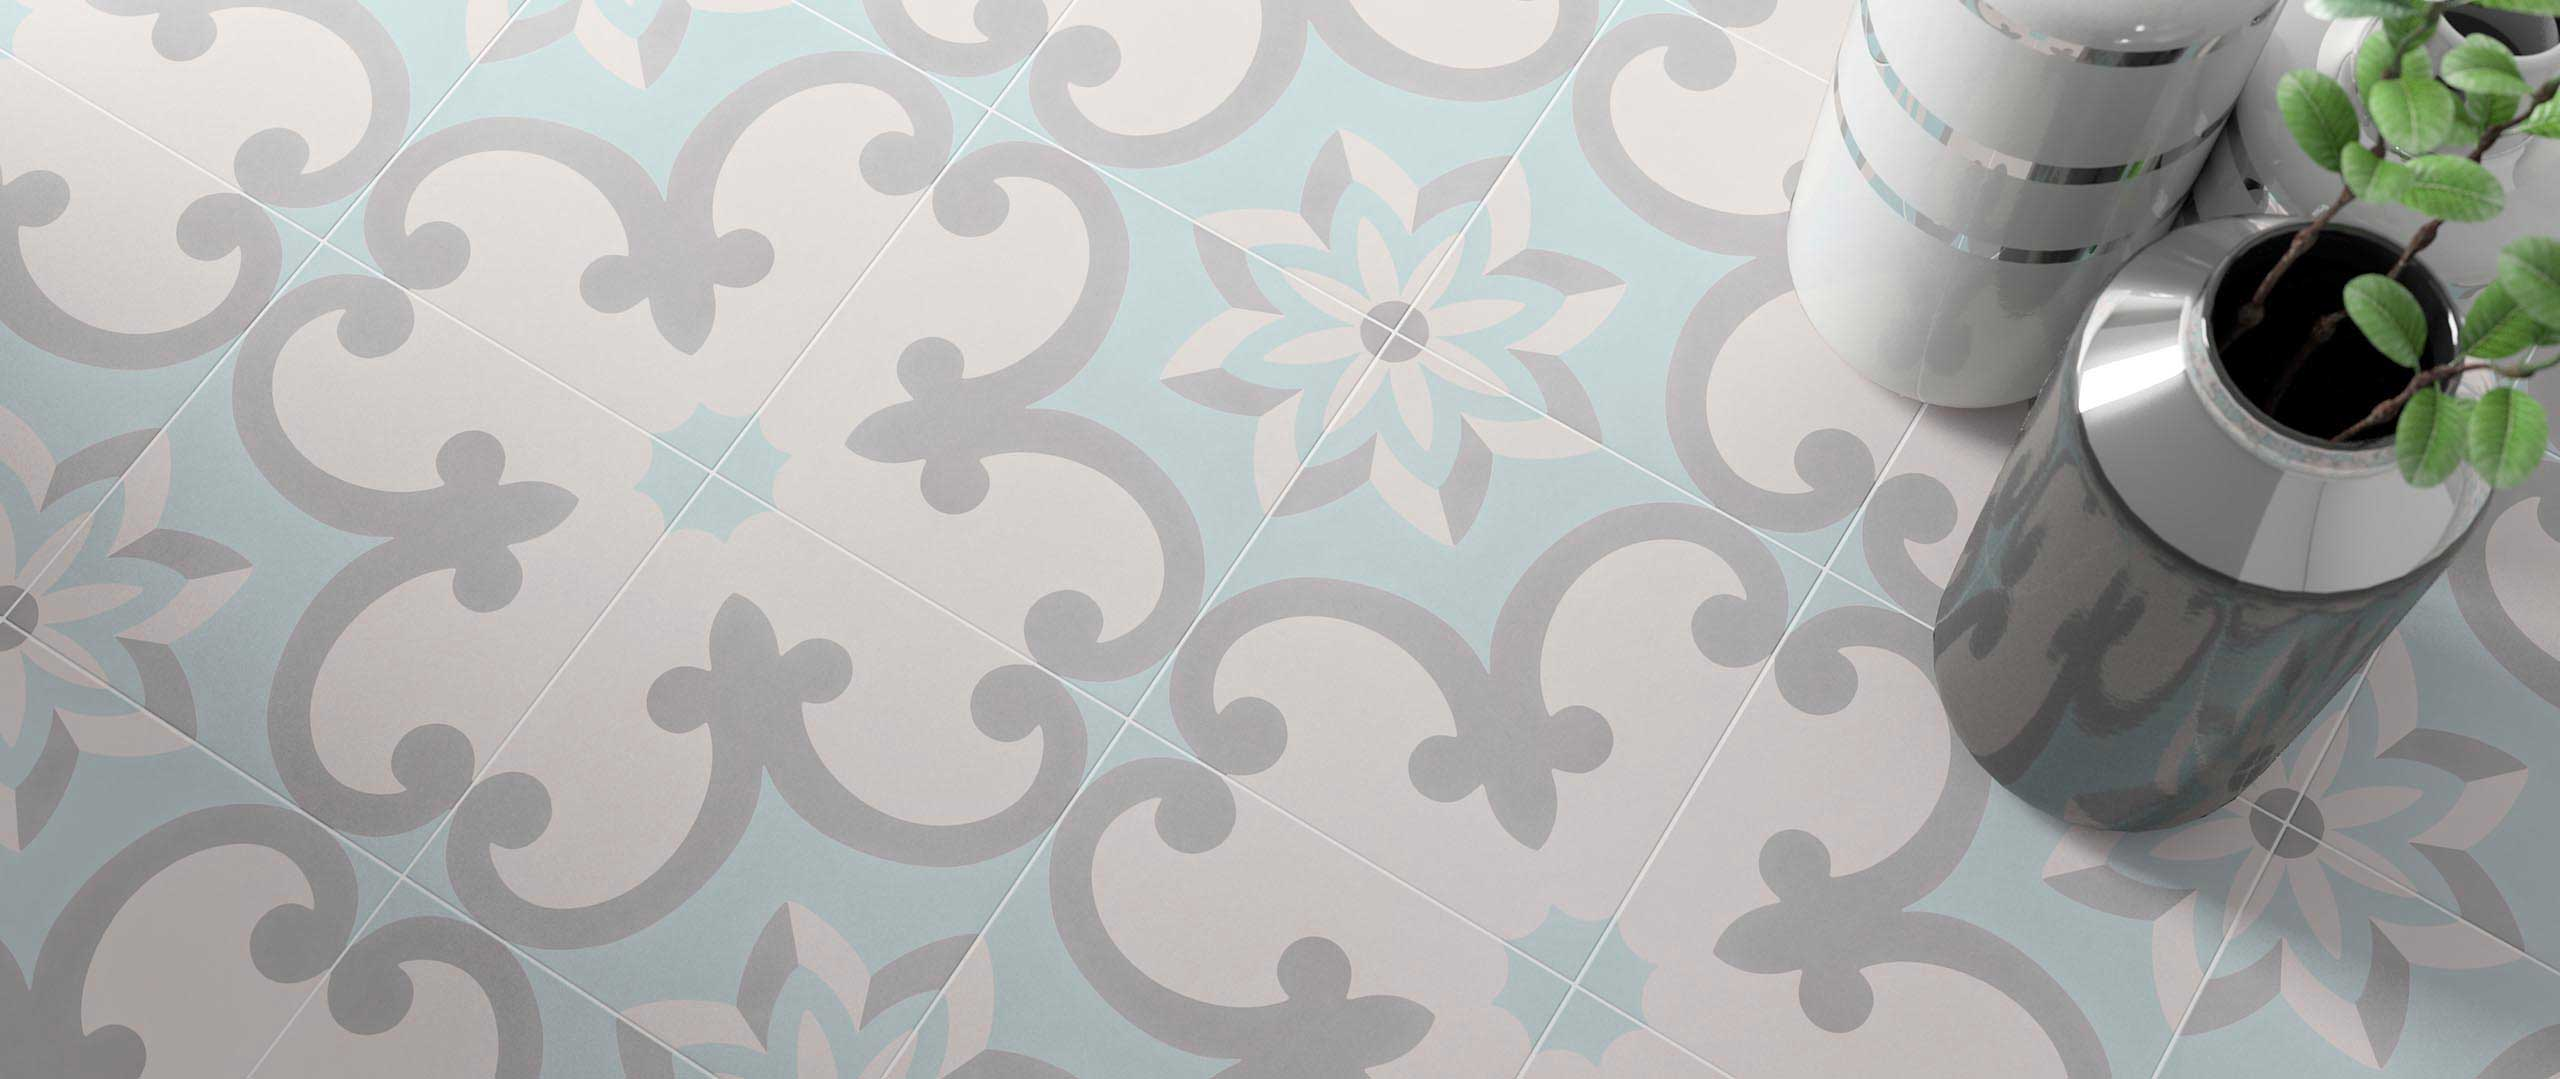 Cement By Wow Porcelain Tiles - SS Tile and Stone Toronto